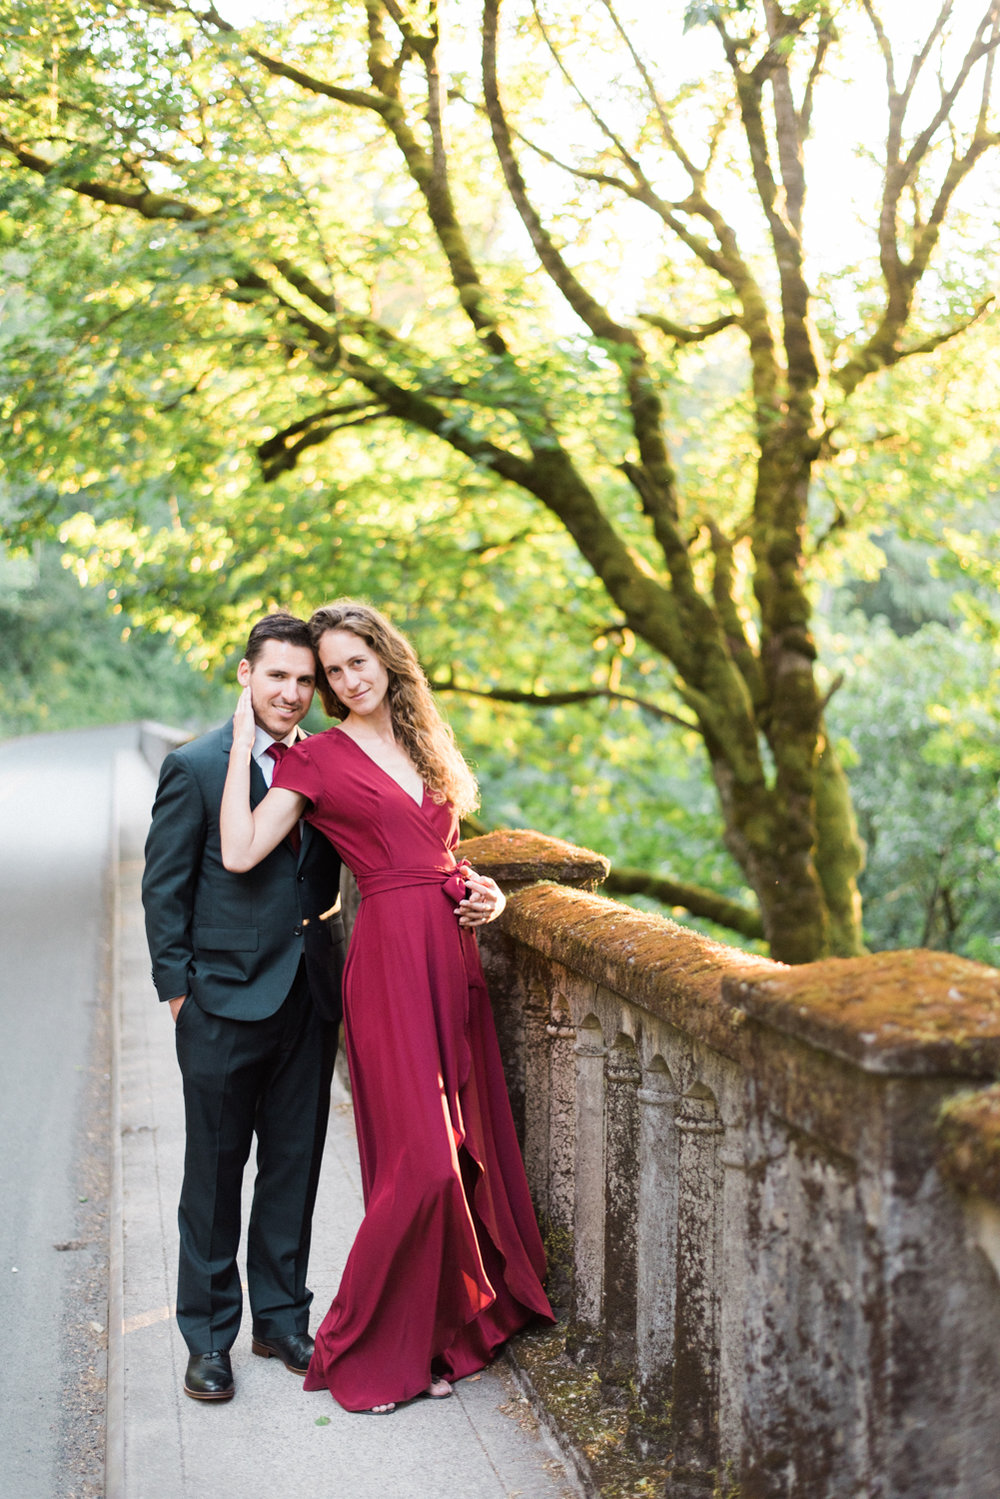 latourel-waterfall-engagement-photos-columbia-river-gorge-portland-oregon-216.jpg